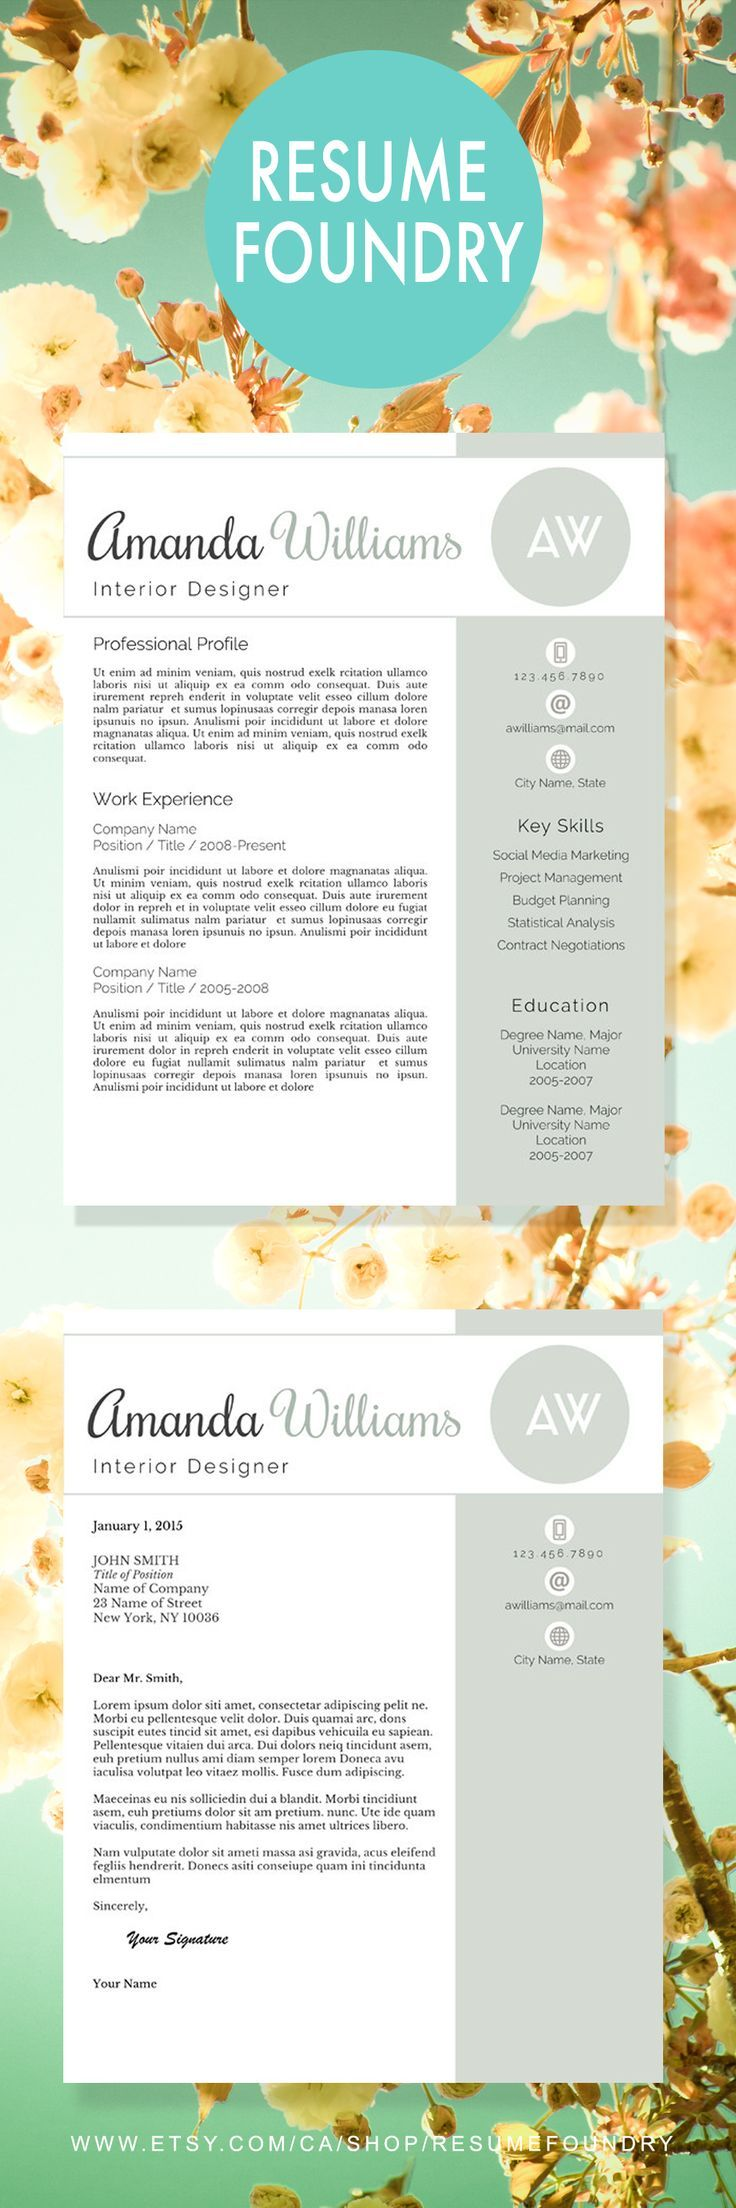 best ideas about simple resume template resume modern resume template cv template cover letter for ms word teacher resume one two and three page resume design references